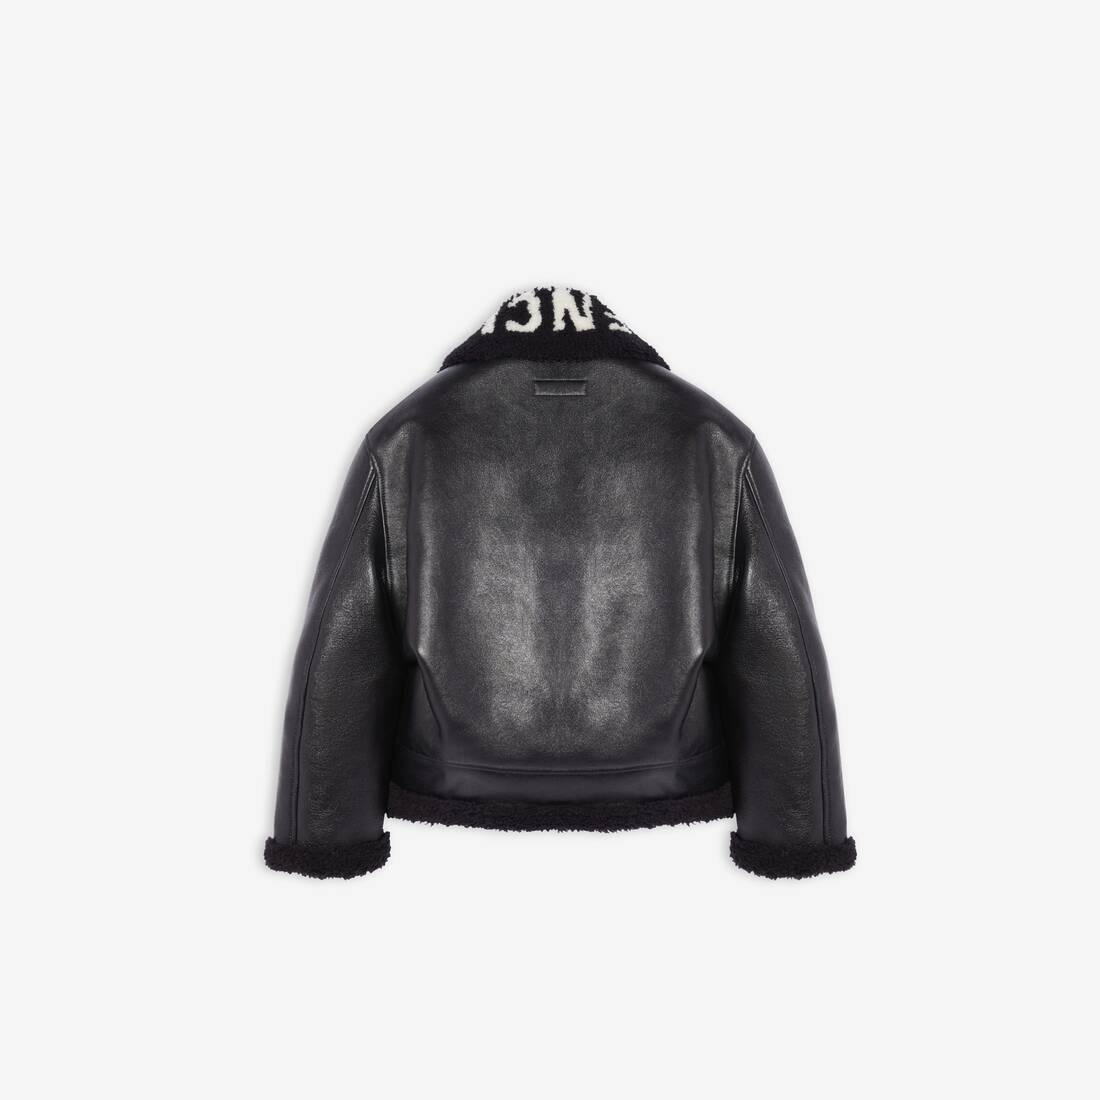 Display zoomed version of cocoon shearling jacket 2